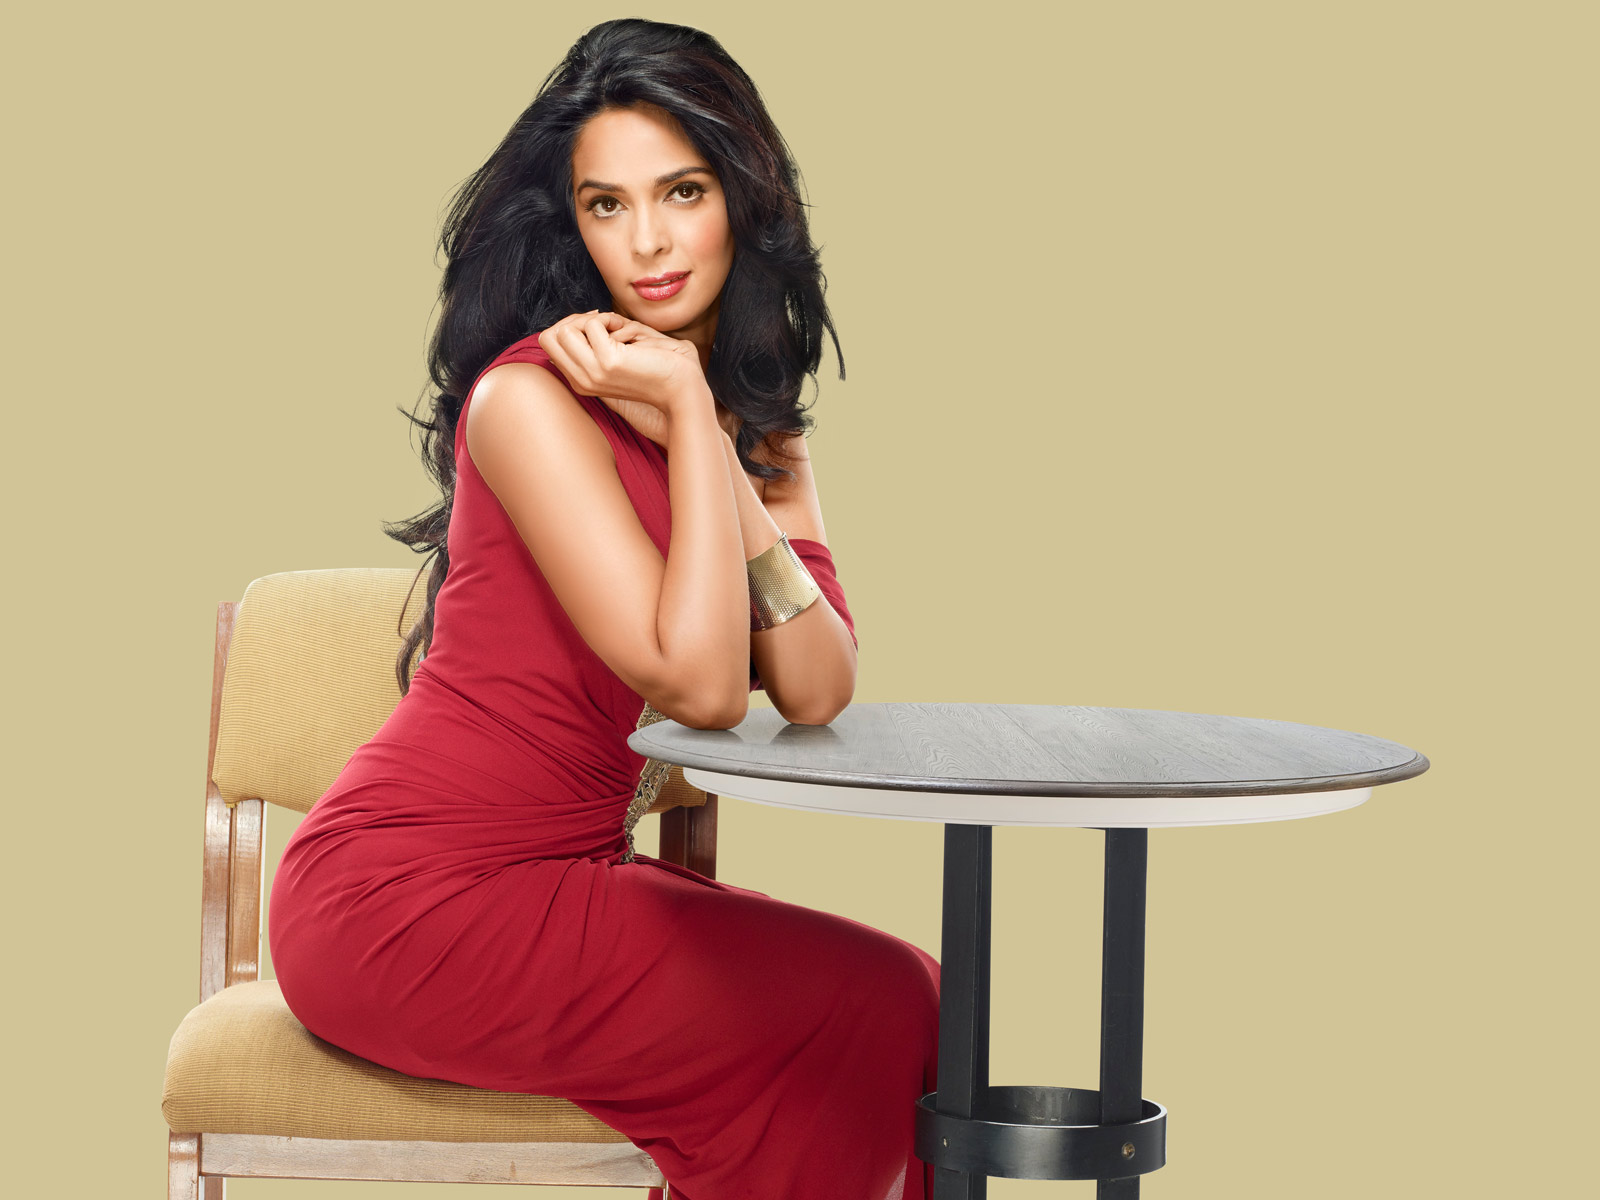 mallika-sherawat-in-red-dress_1600x1200